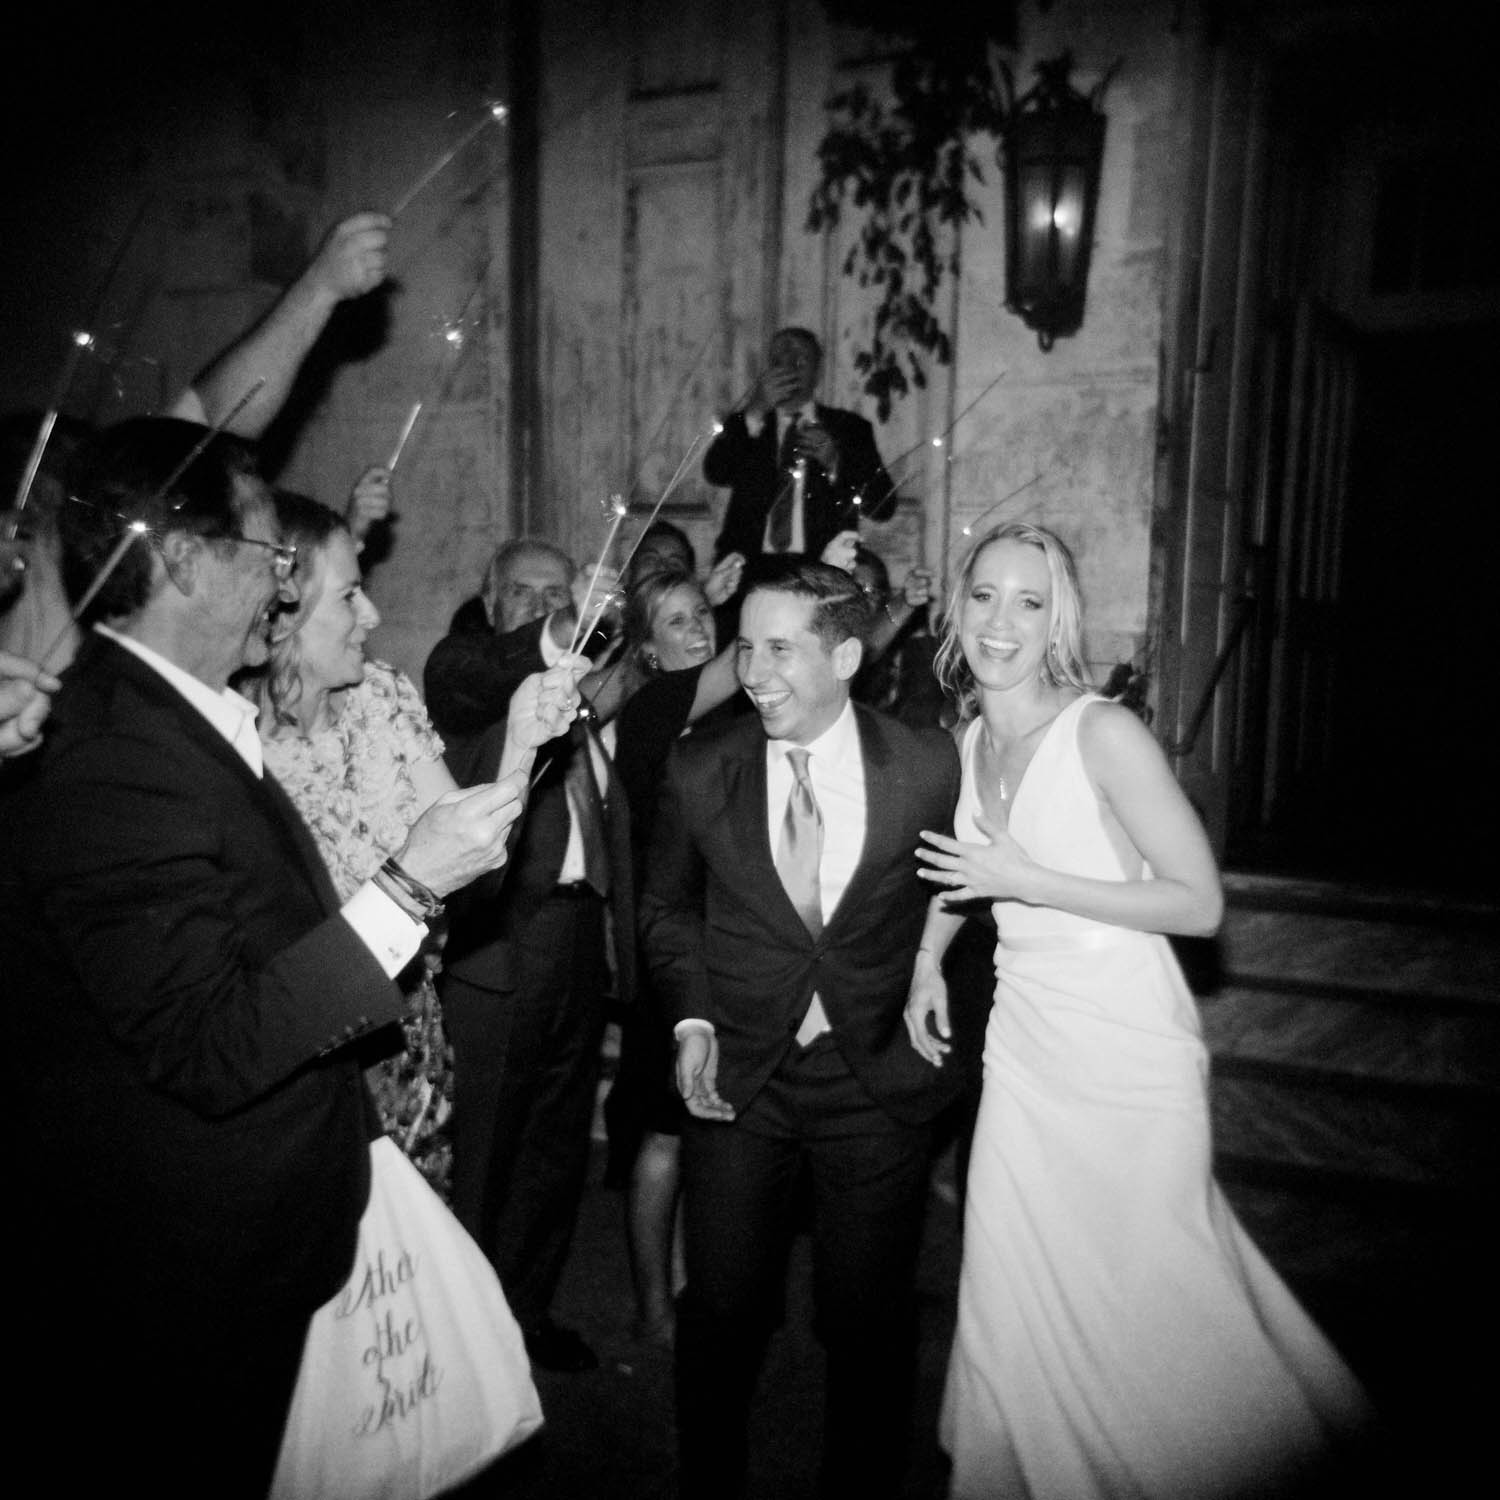 new orleans marigny opera house wedding reception bride and groom departure